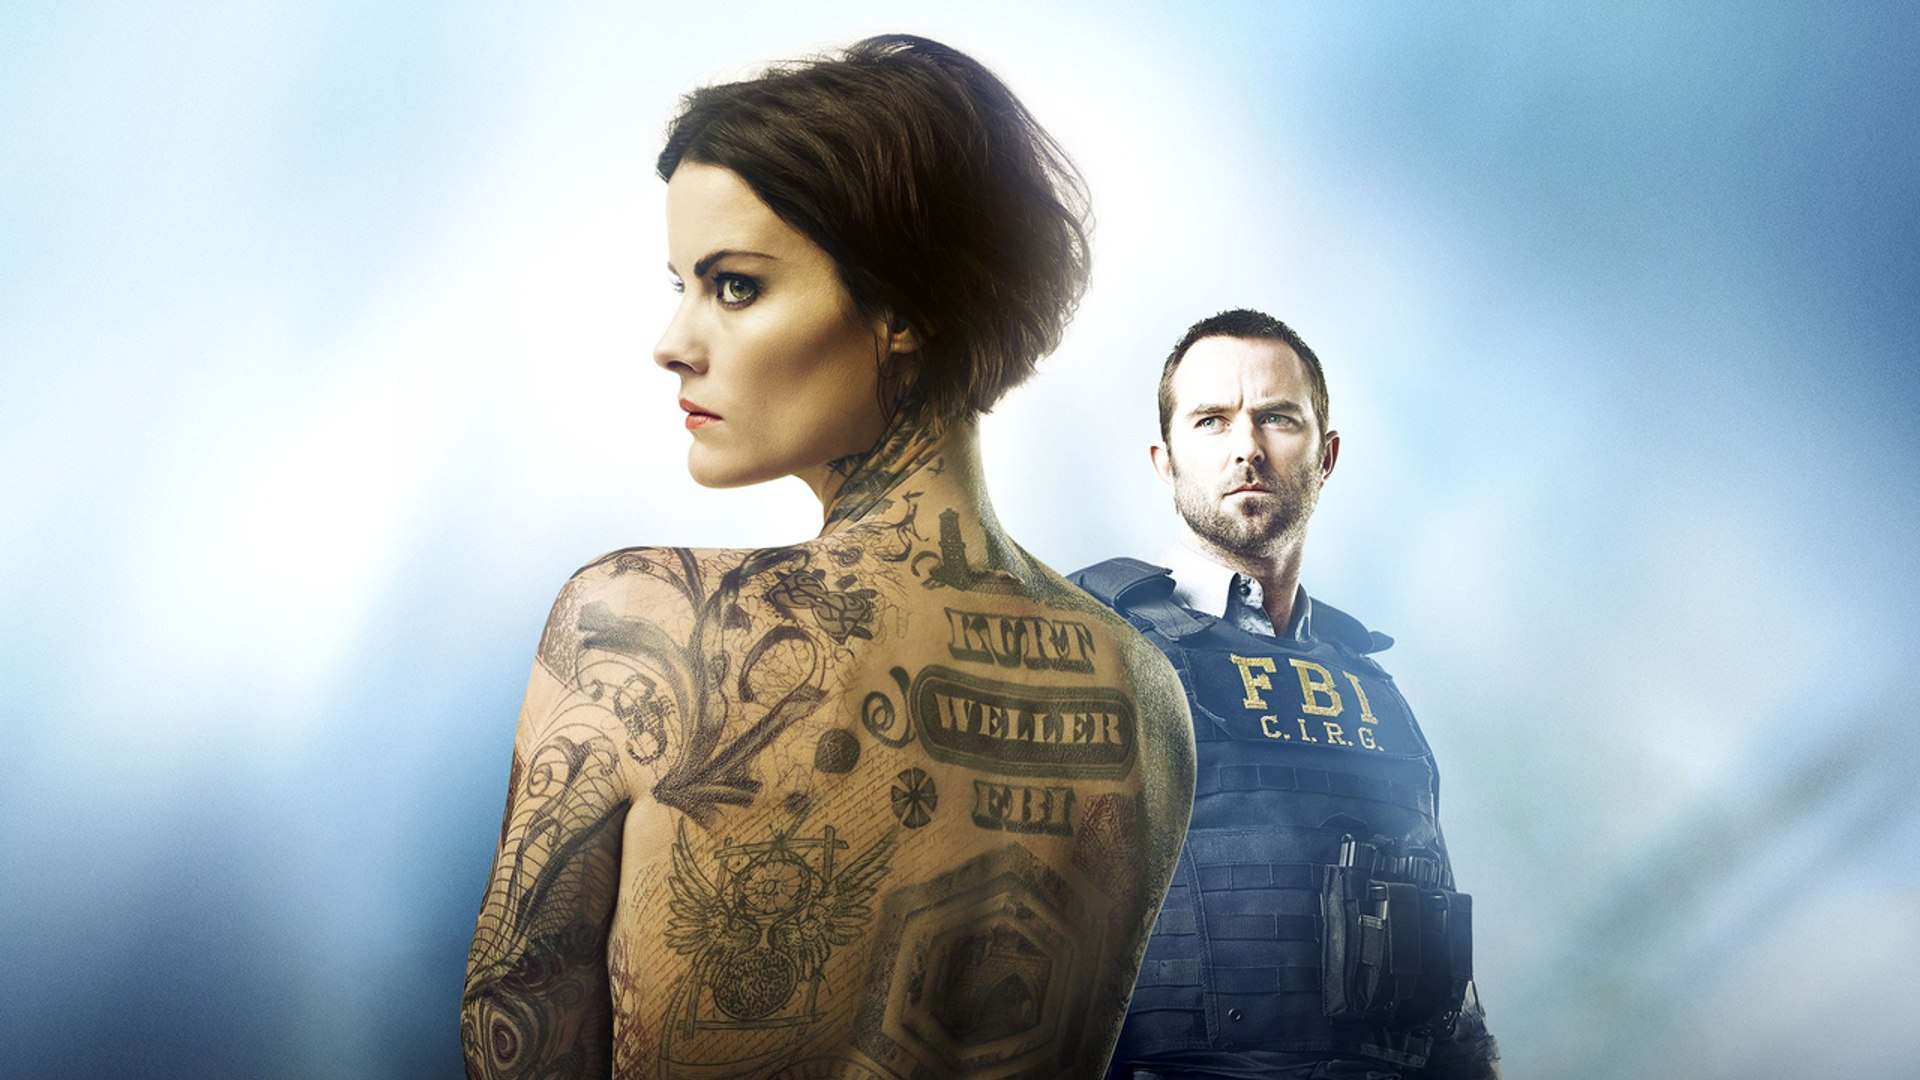 Blindspot Season 2 Episode 22 Lepers Repel Video Dailymotion